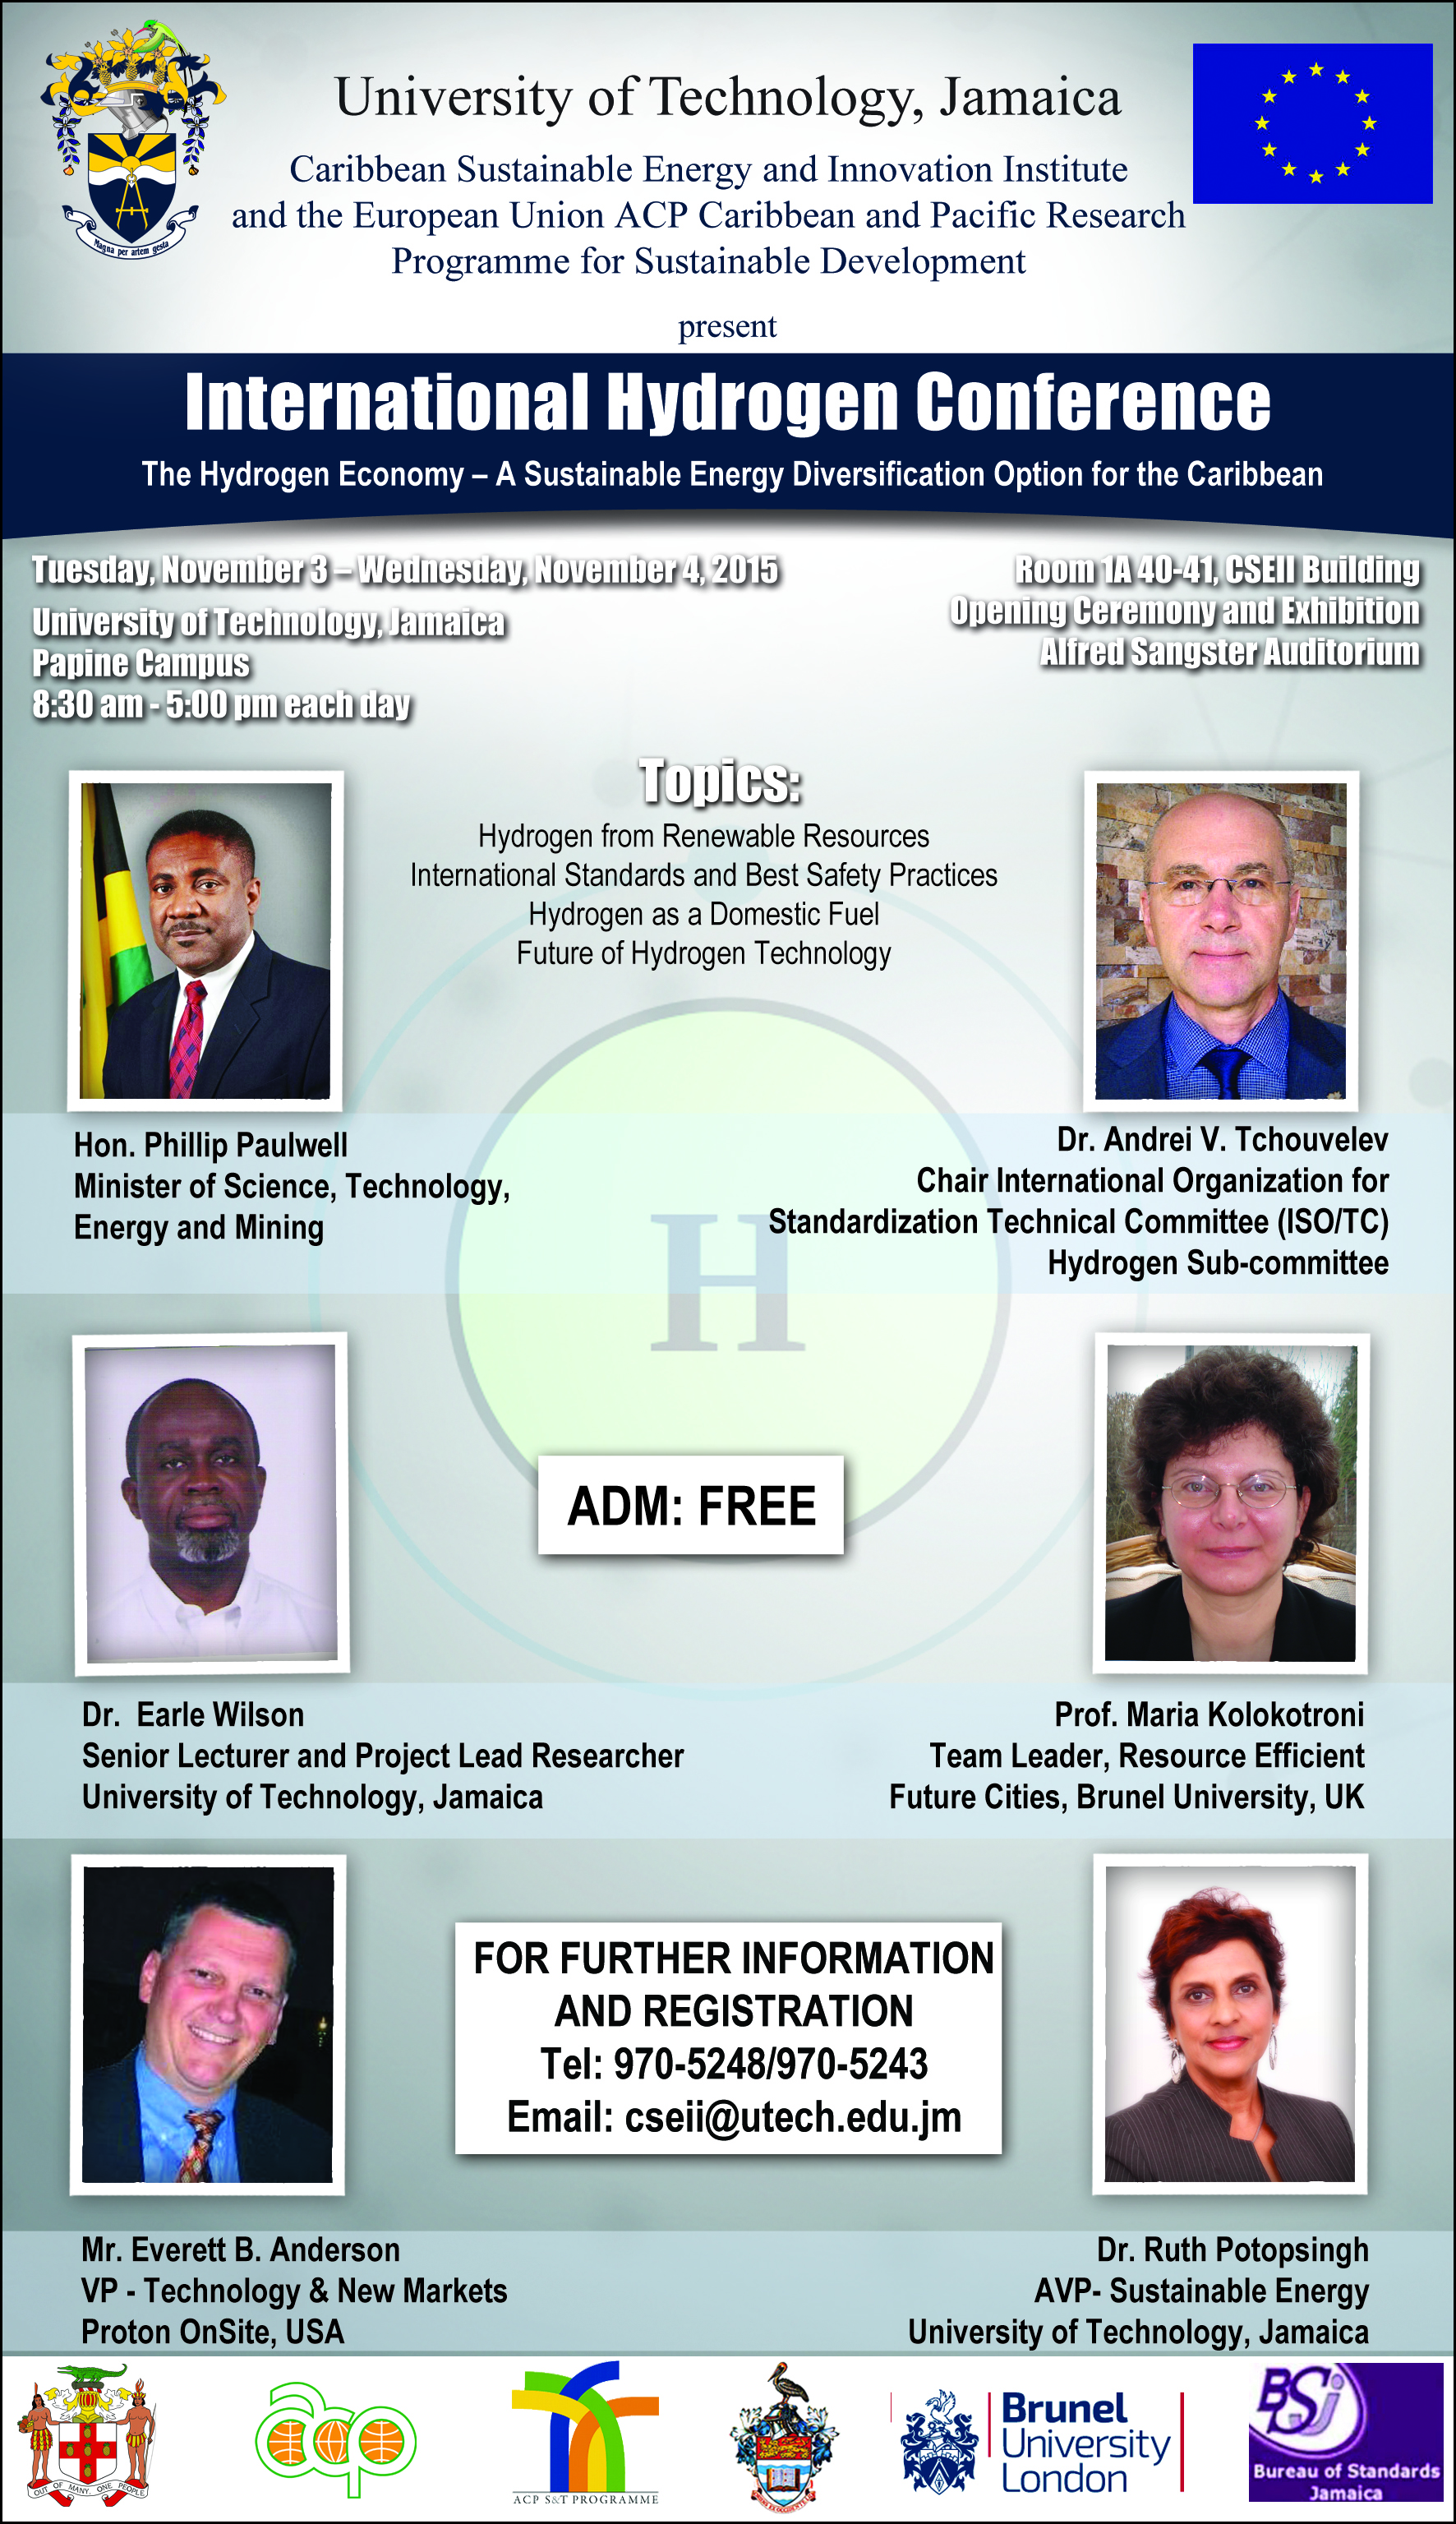 UTech, Jamaica International Conference to Highlight Hydrogen as a Sustainable Domestic Fuel